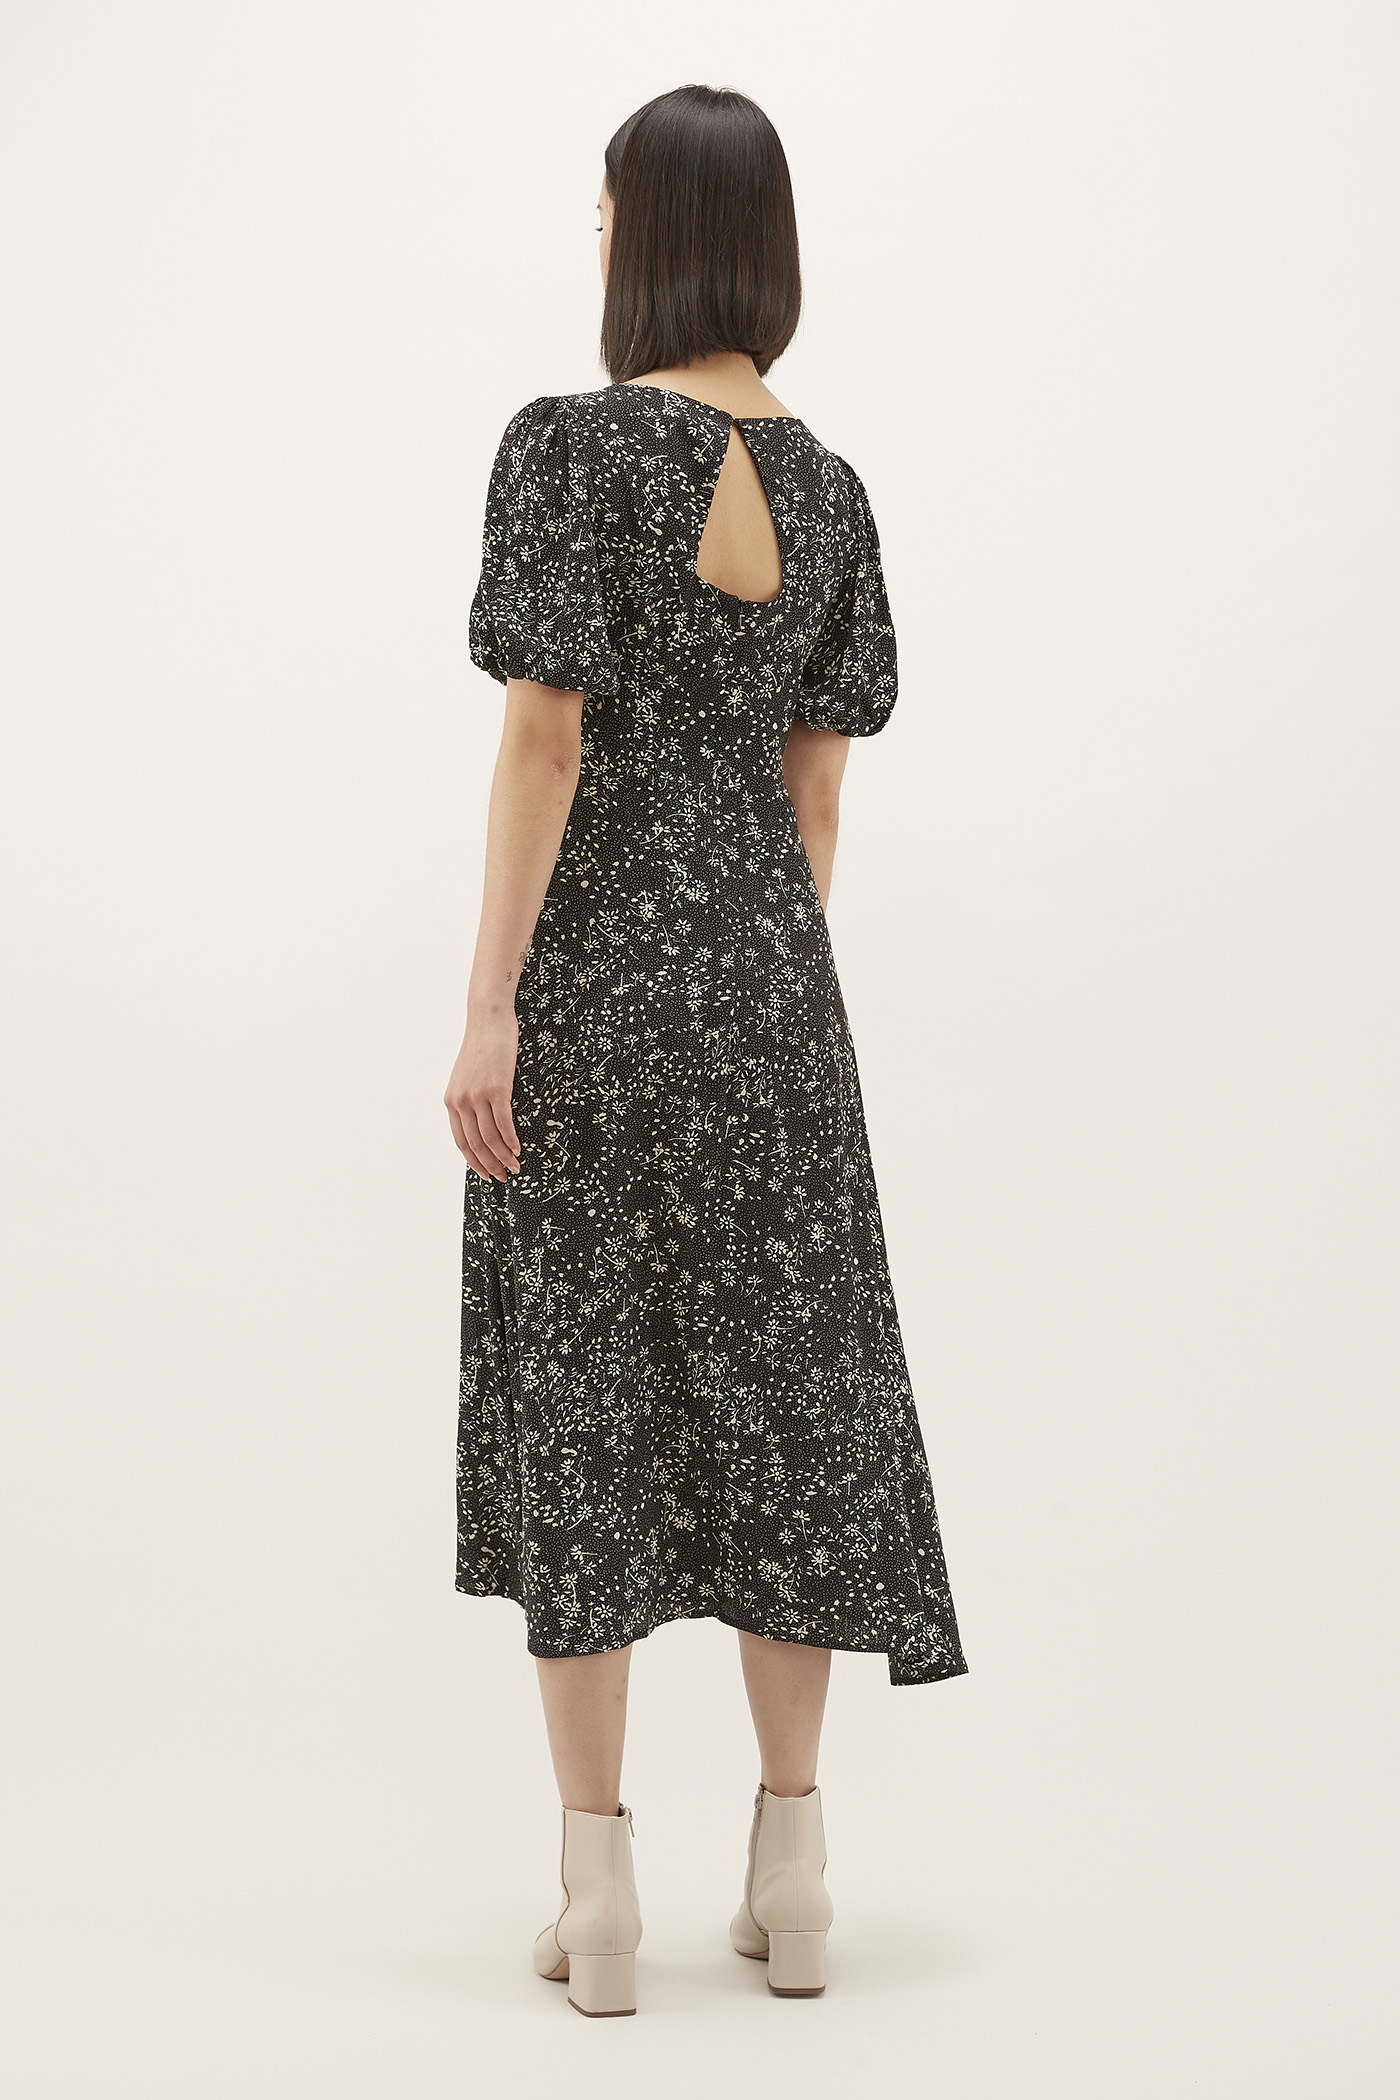 Tressa Cross-front Maxi Dress